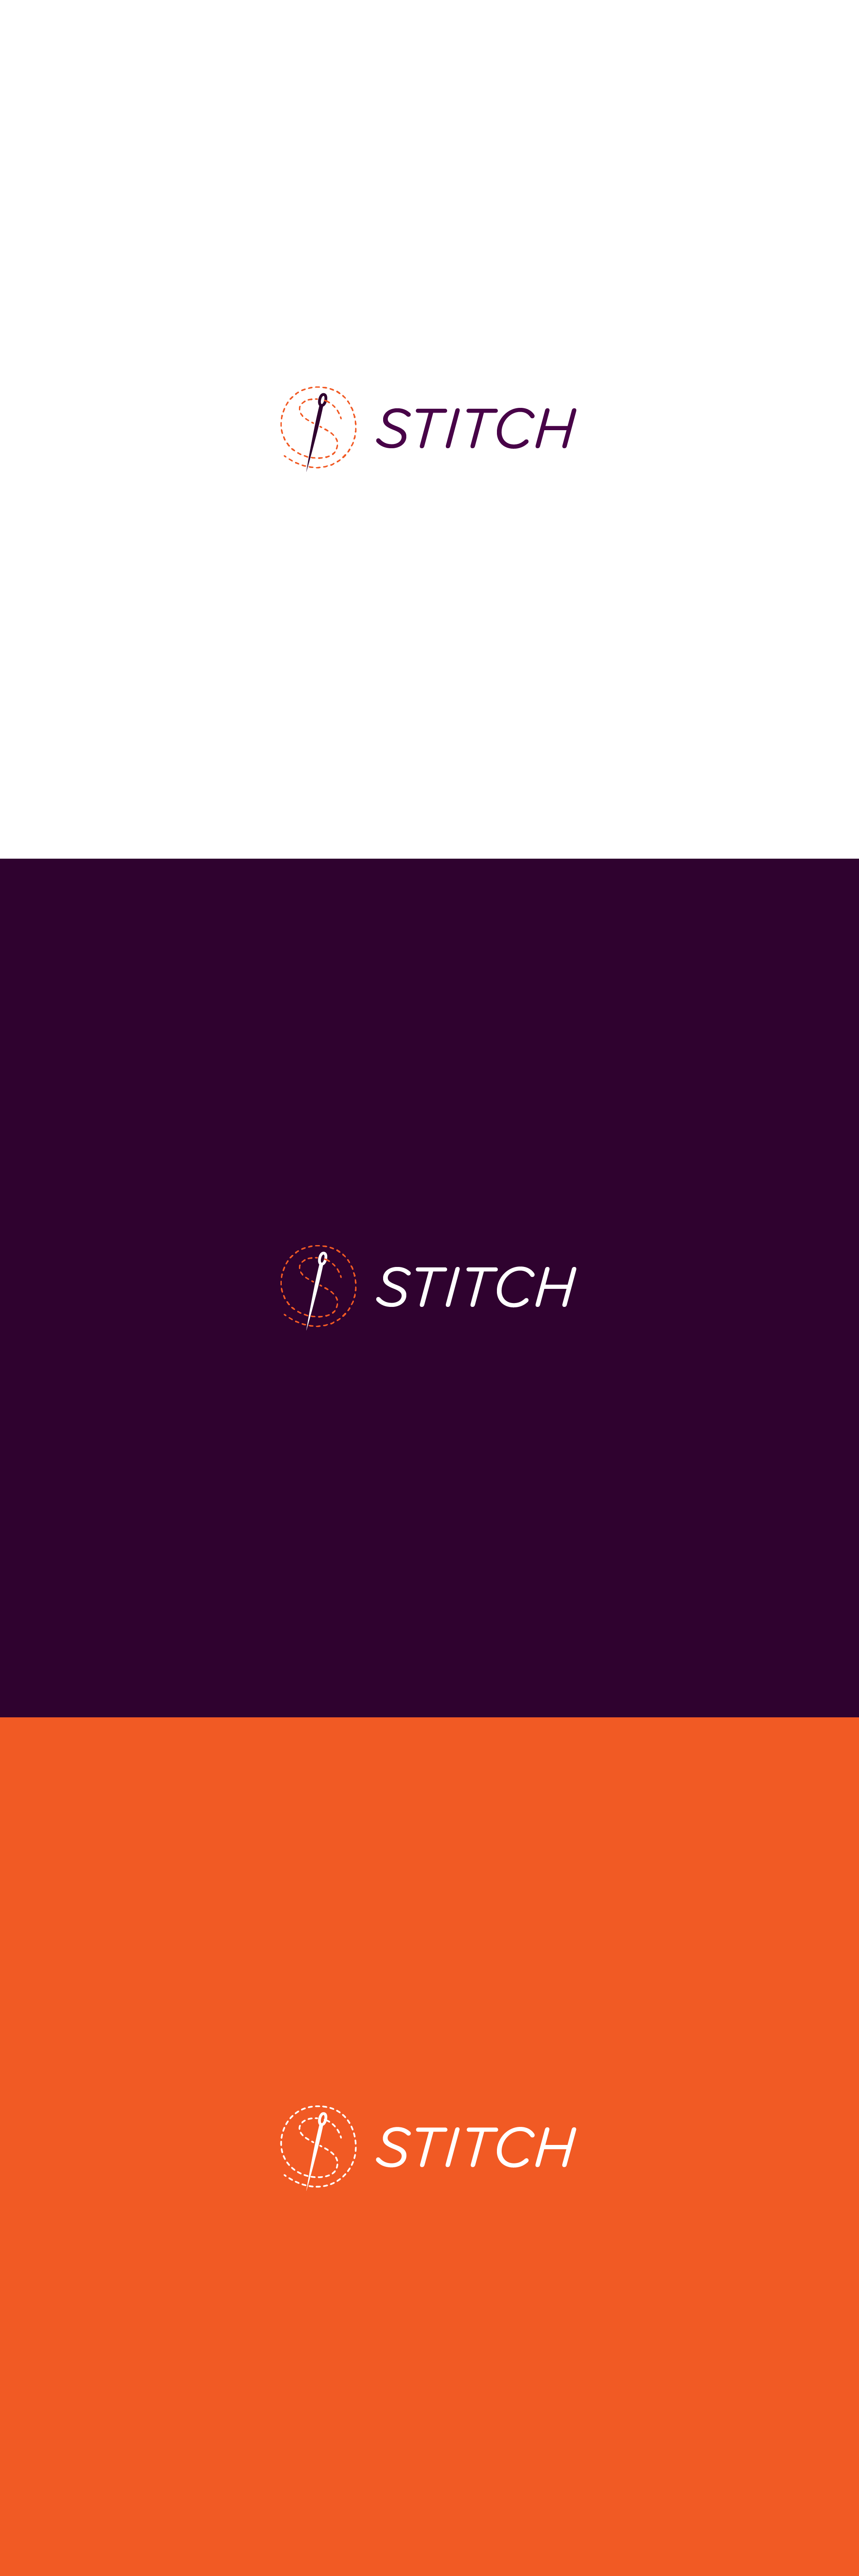 Logo for a tailoring company